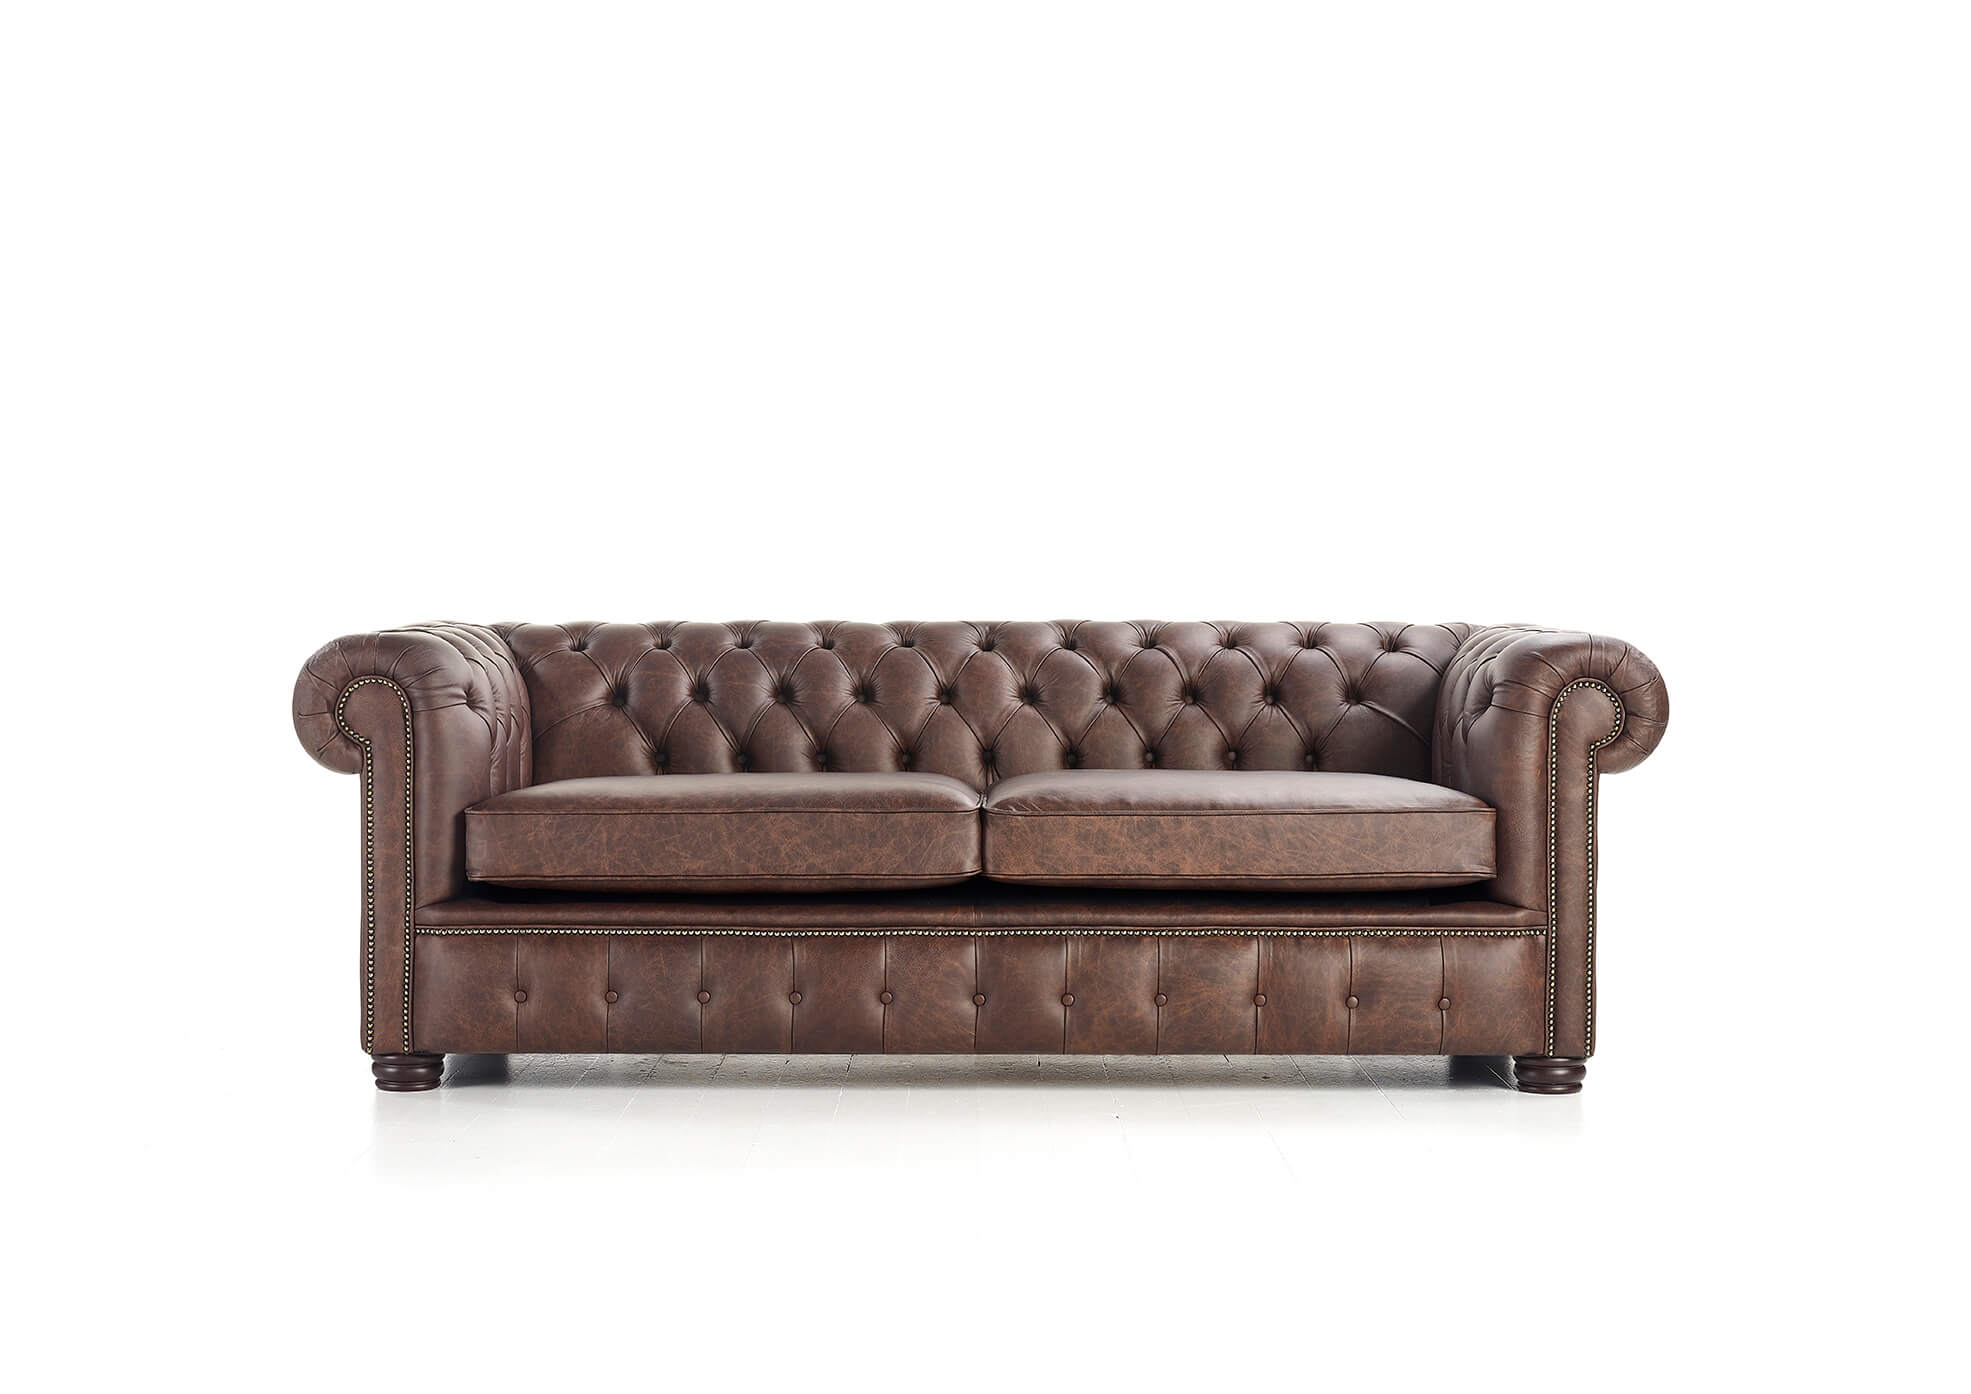 Fauteuil Chesterfield London Cuir Marron